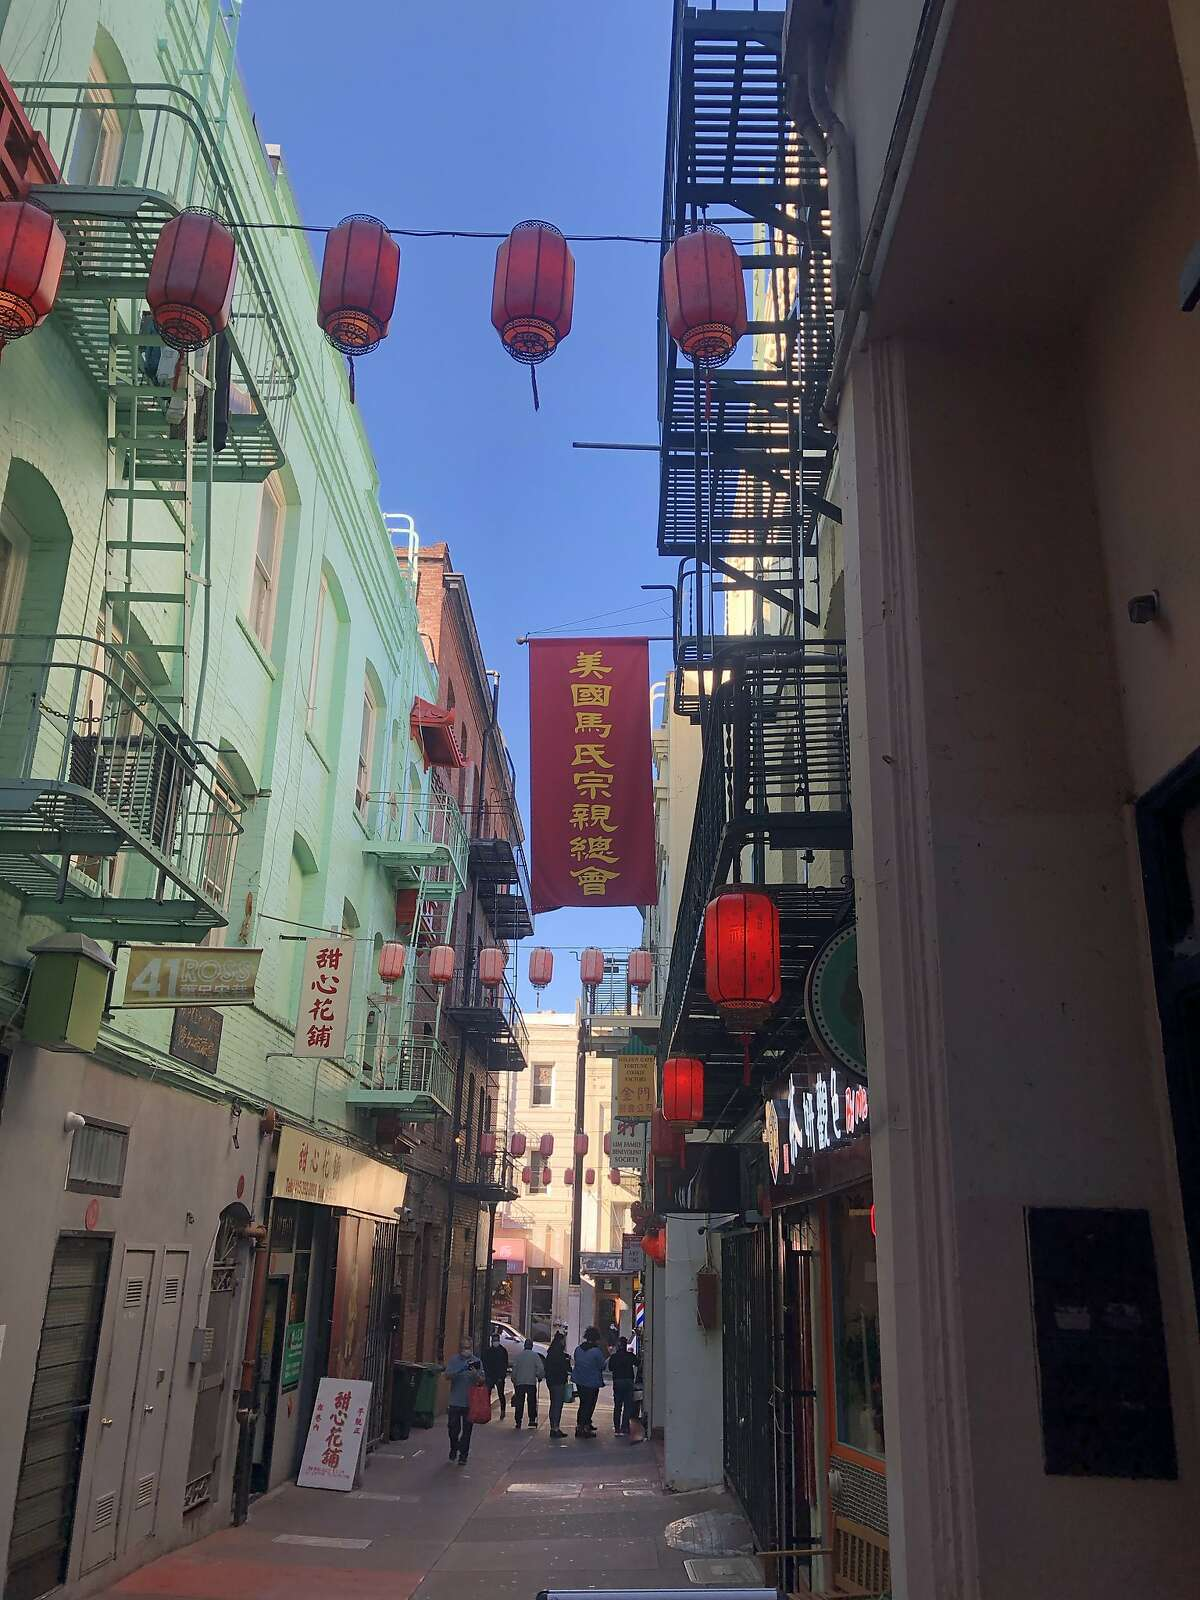 Scenes in Chinatown Stockton street and Ross alley